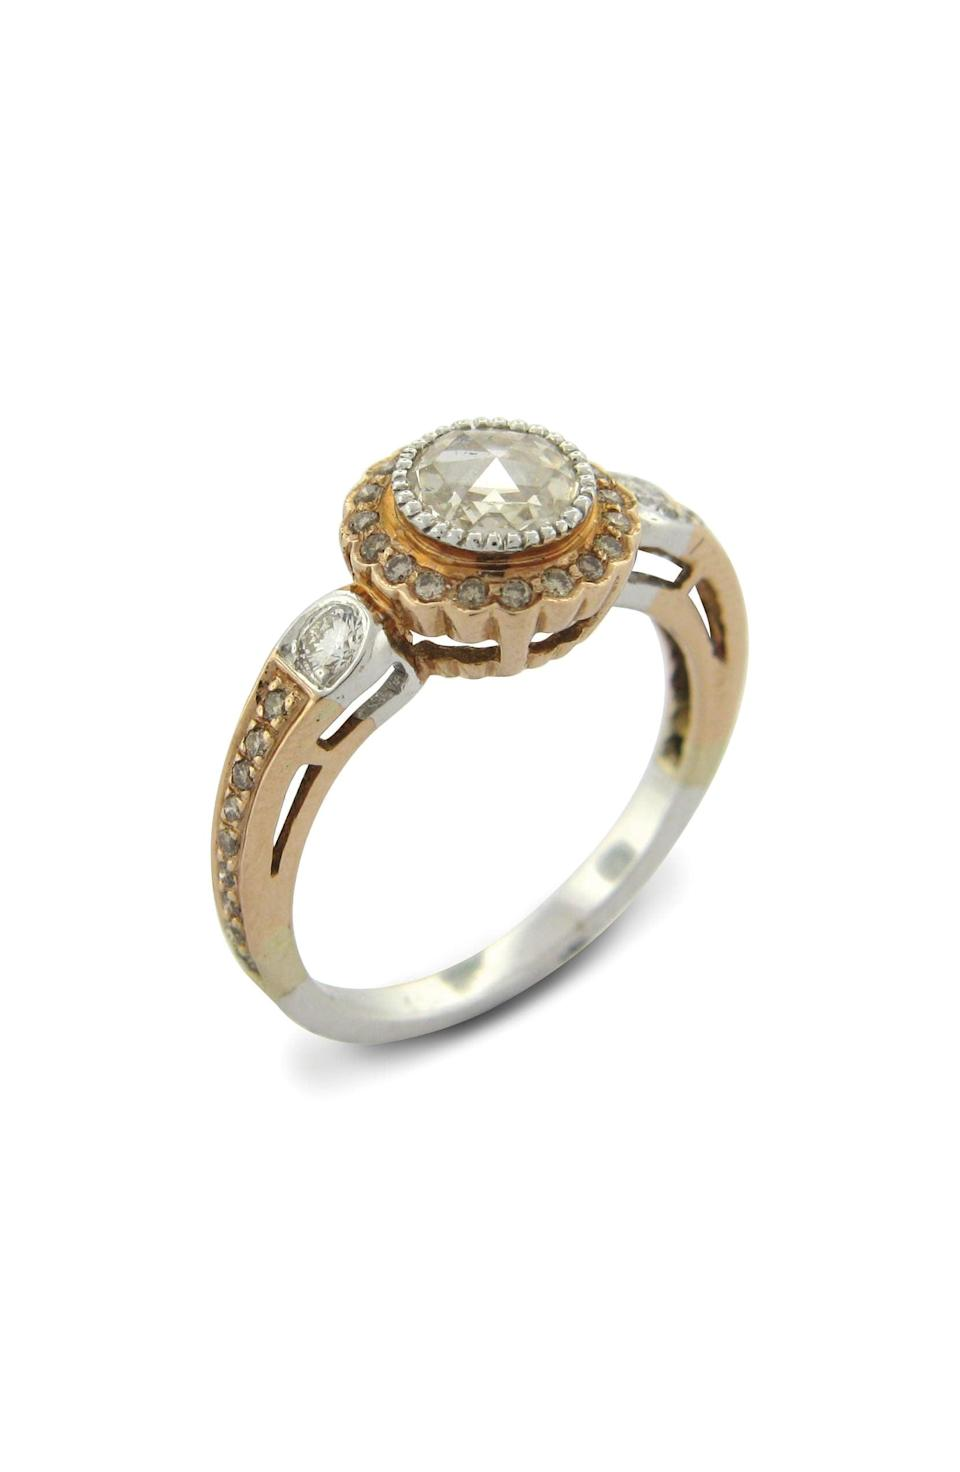 """<p>If they love diamonds, they'll be googly-eyed over the 41 champagne diamonds in the <a href=""""https://www.popsugar.com/buy/Sethi-Couture-True-Romance-Champagne-Diamond-Ring-532235?p_name=Sethi%20Couture%20True%20Romance%20Champagne%20Diamond%20Ring&retailer=shop.nordstrom.com&pid=532235&price=4%2C840&evar1=fab%3Aus&evar9=7954958&evar98=https%3A%2F%2Fwww.popsugar.com%2Fphoto-gallery%2F7954958%2Fimage%2F47021283%2FSethi-Couture-True-Romance-Champagne-Diamond-Ring&list1=shopping%2Cwedding%2Cjewelry%2Crings%2Cbride%2Cengagement%20rings%2Cfashion%20shopping&prop13=api&pdata=1"""" rel=""""nofollow noopener"""" class=""""link rapid-noclick-resp"""" target=""""_blank"""" data-ylk=""""slk:Sethi Couture True Romance Champagne Diamond Ring"""">Sethi Couture True Romance Champagne Diamond Ring</a> ($4,840).</p>"""